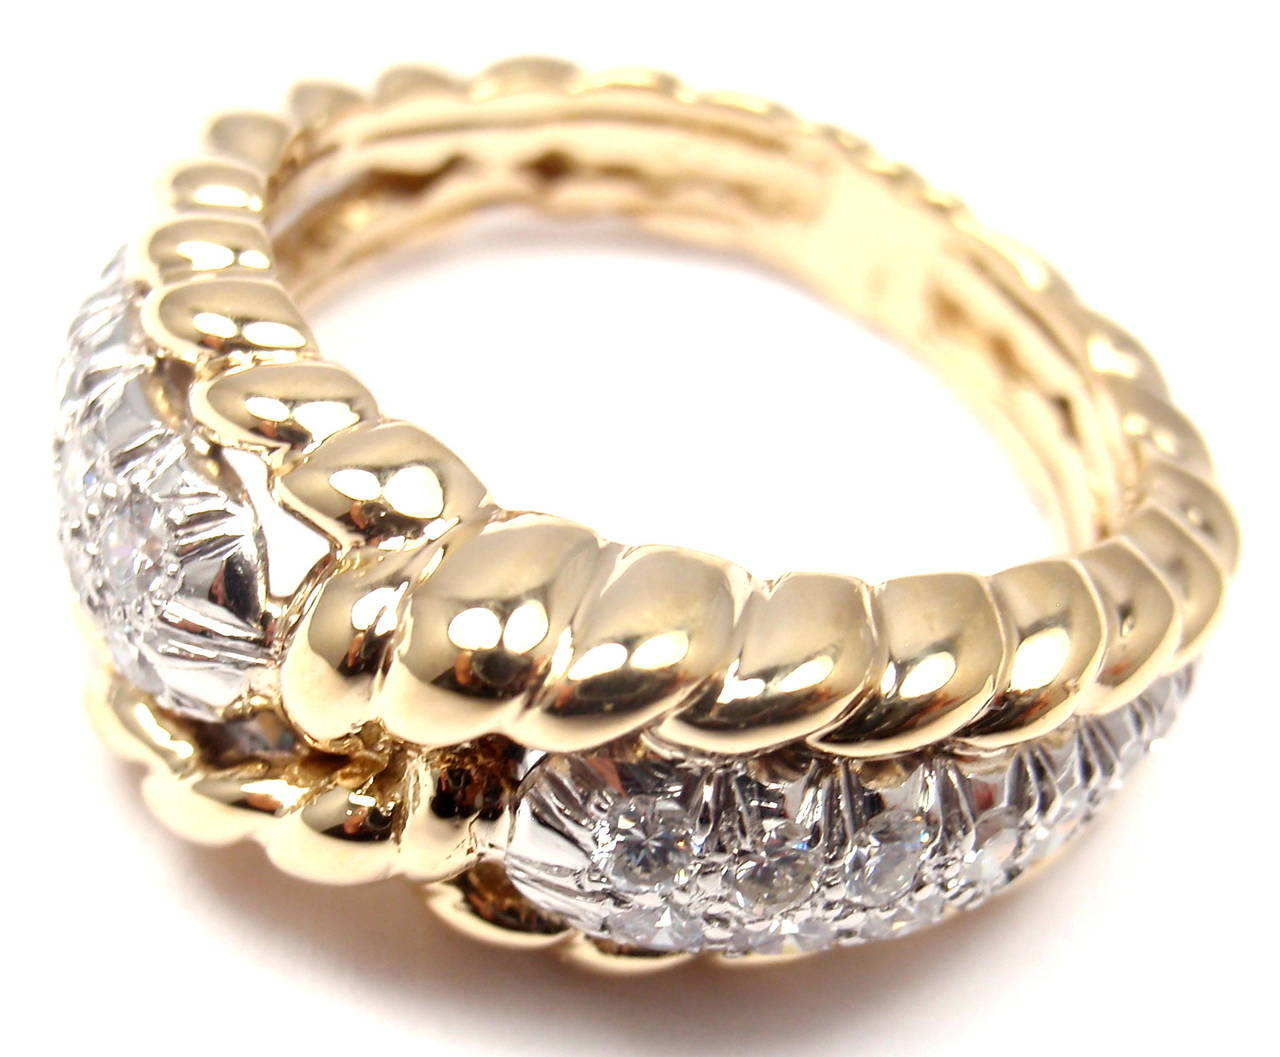 Van Cleef & Arpels Diamond Gold Band Ring In As new Condition For Sale In Southampton, PA